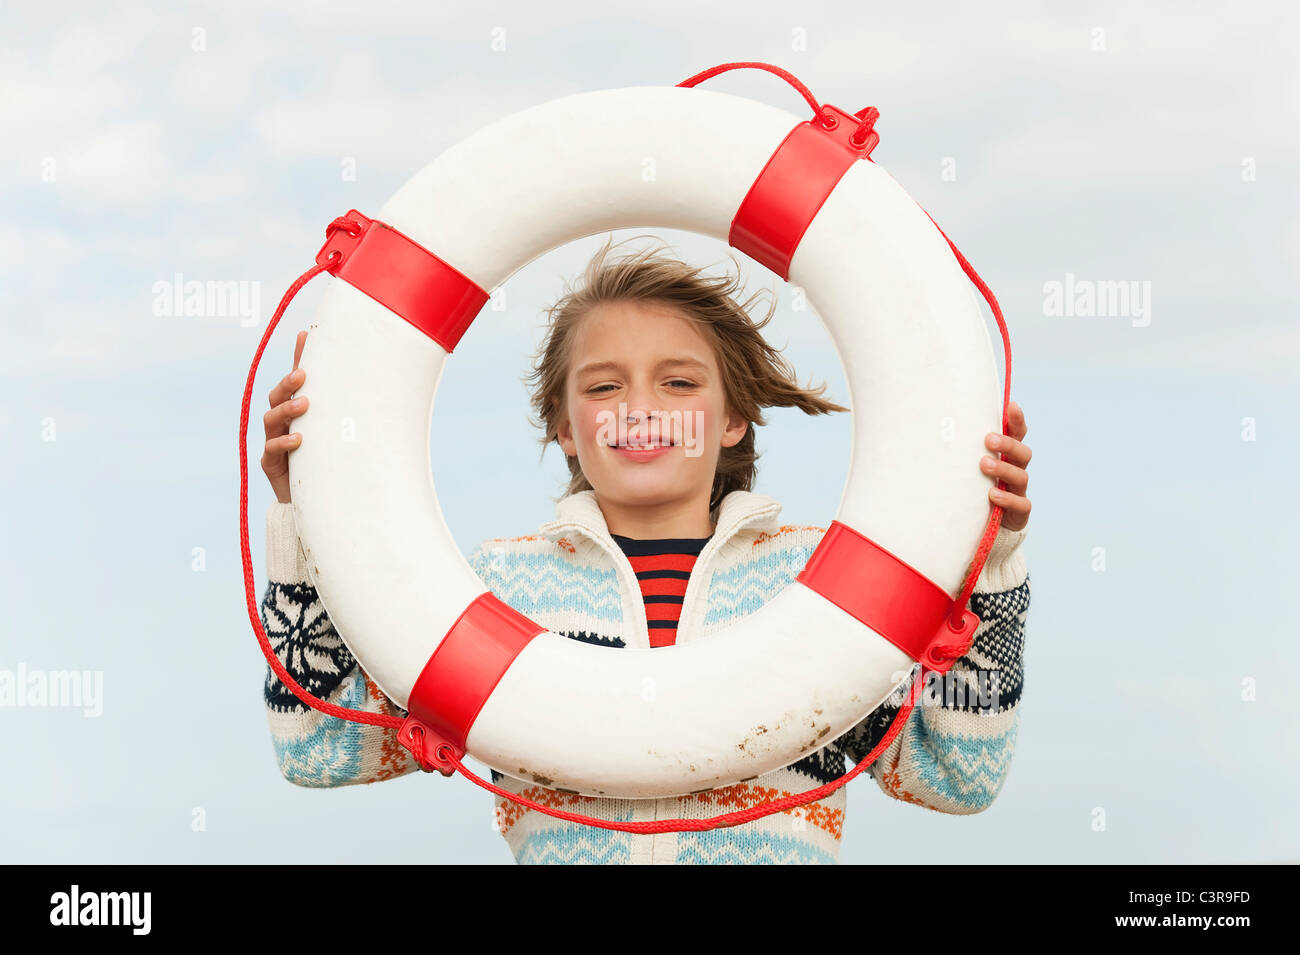 Germany, North Sea, St.Peter-Ording, Boy (8-9) holding life saver at beach, smiling, portrait - Stock Image